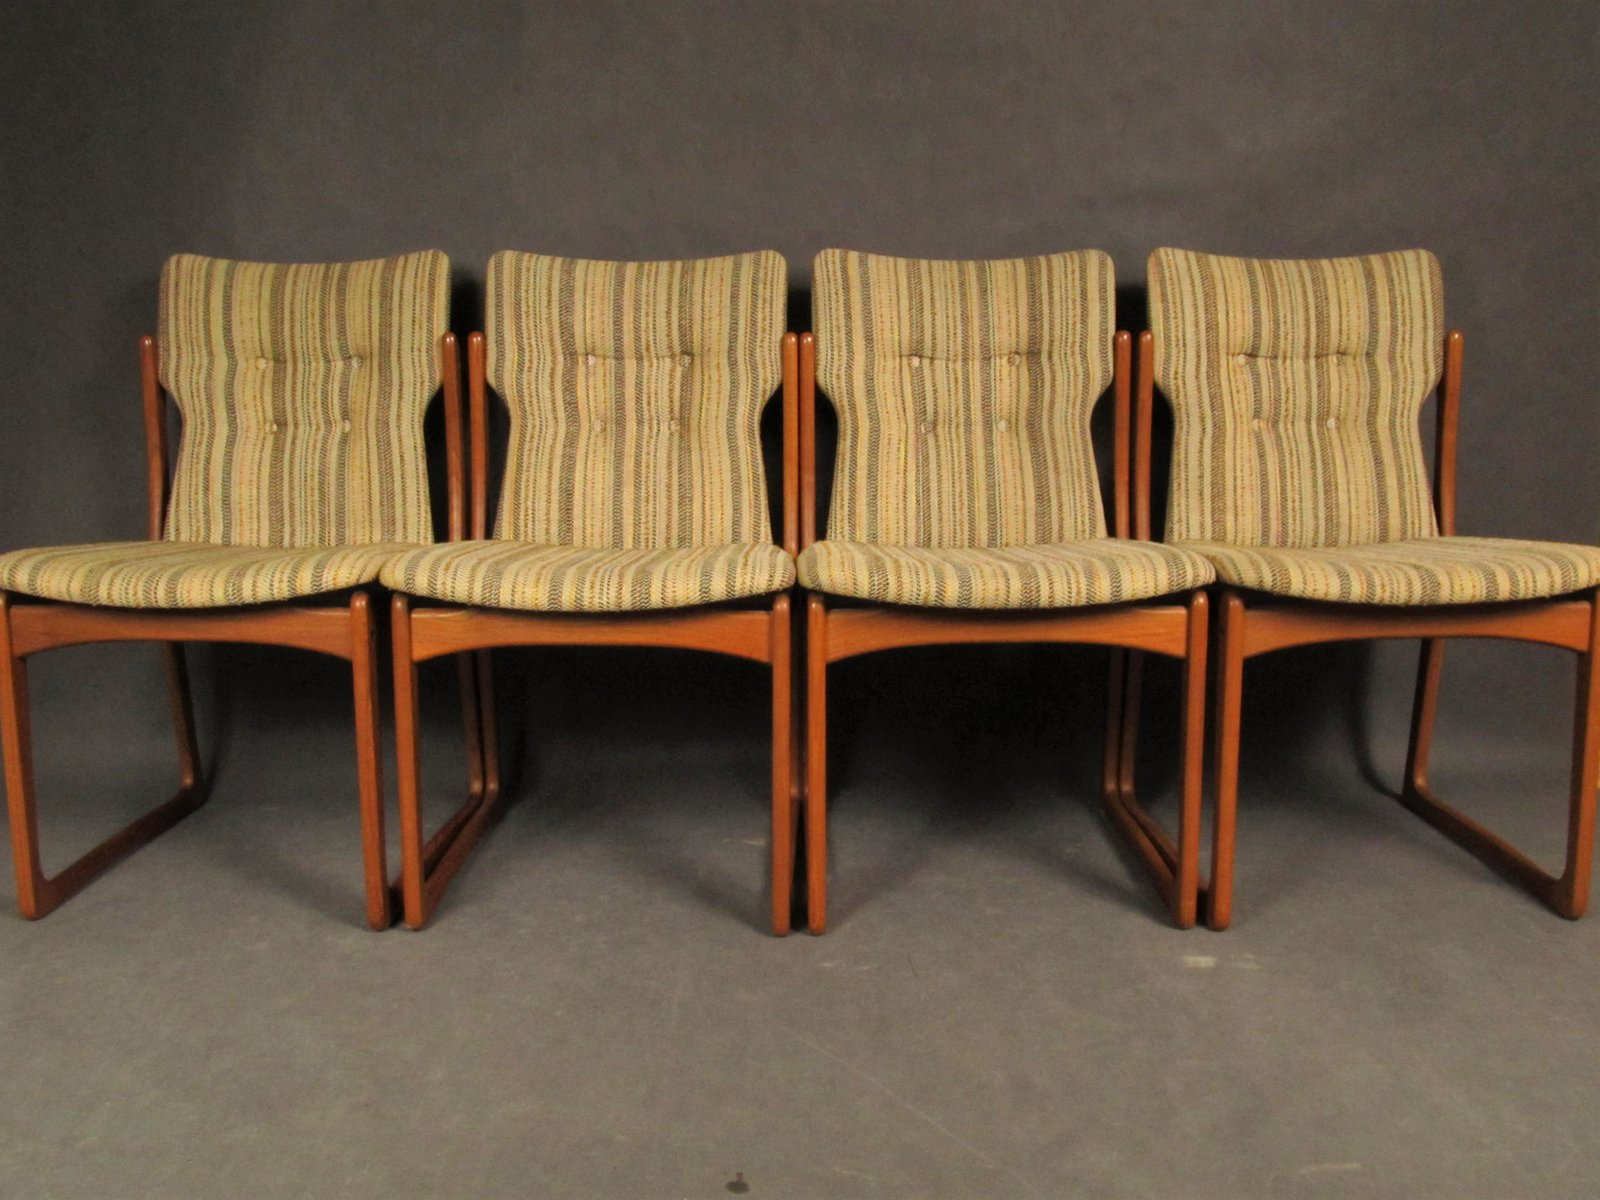 Dining Room Chairs Set Of 4 Mid Century Dining Room Chairs From Vamdrup Stolefabrik 1960s Set Of 4